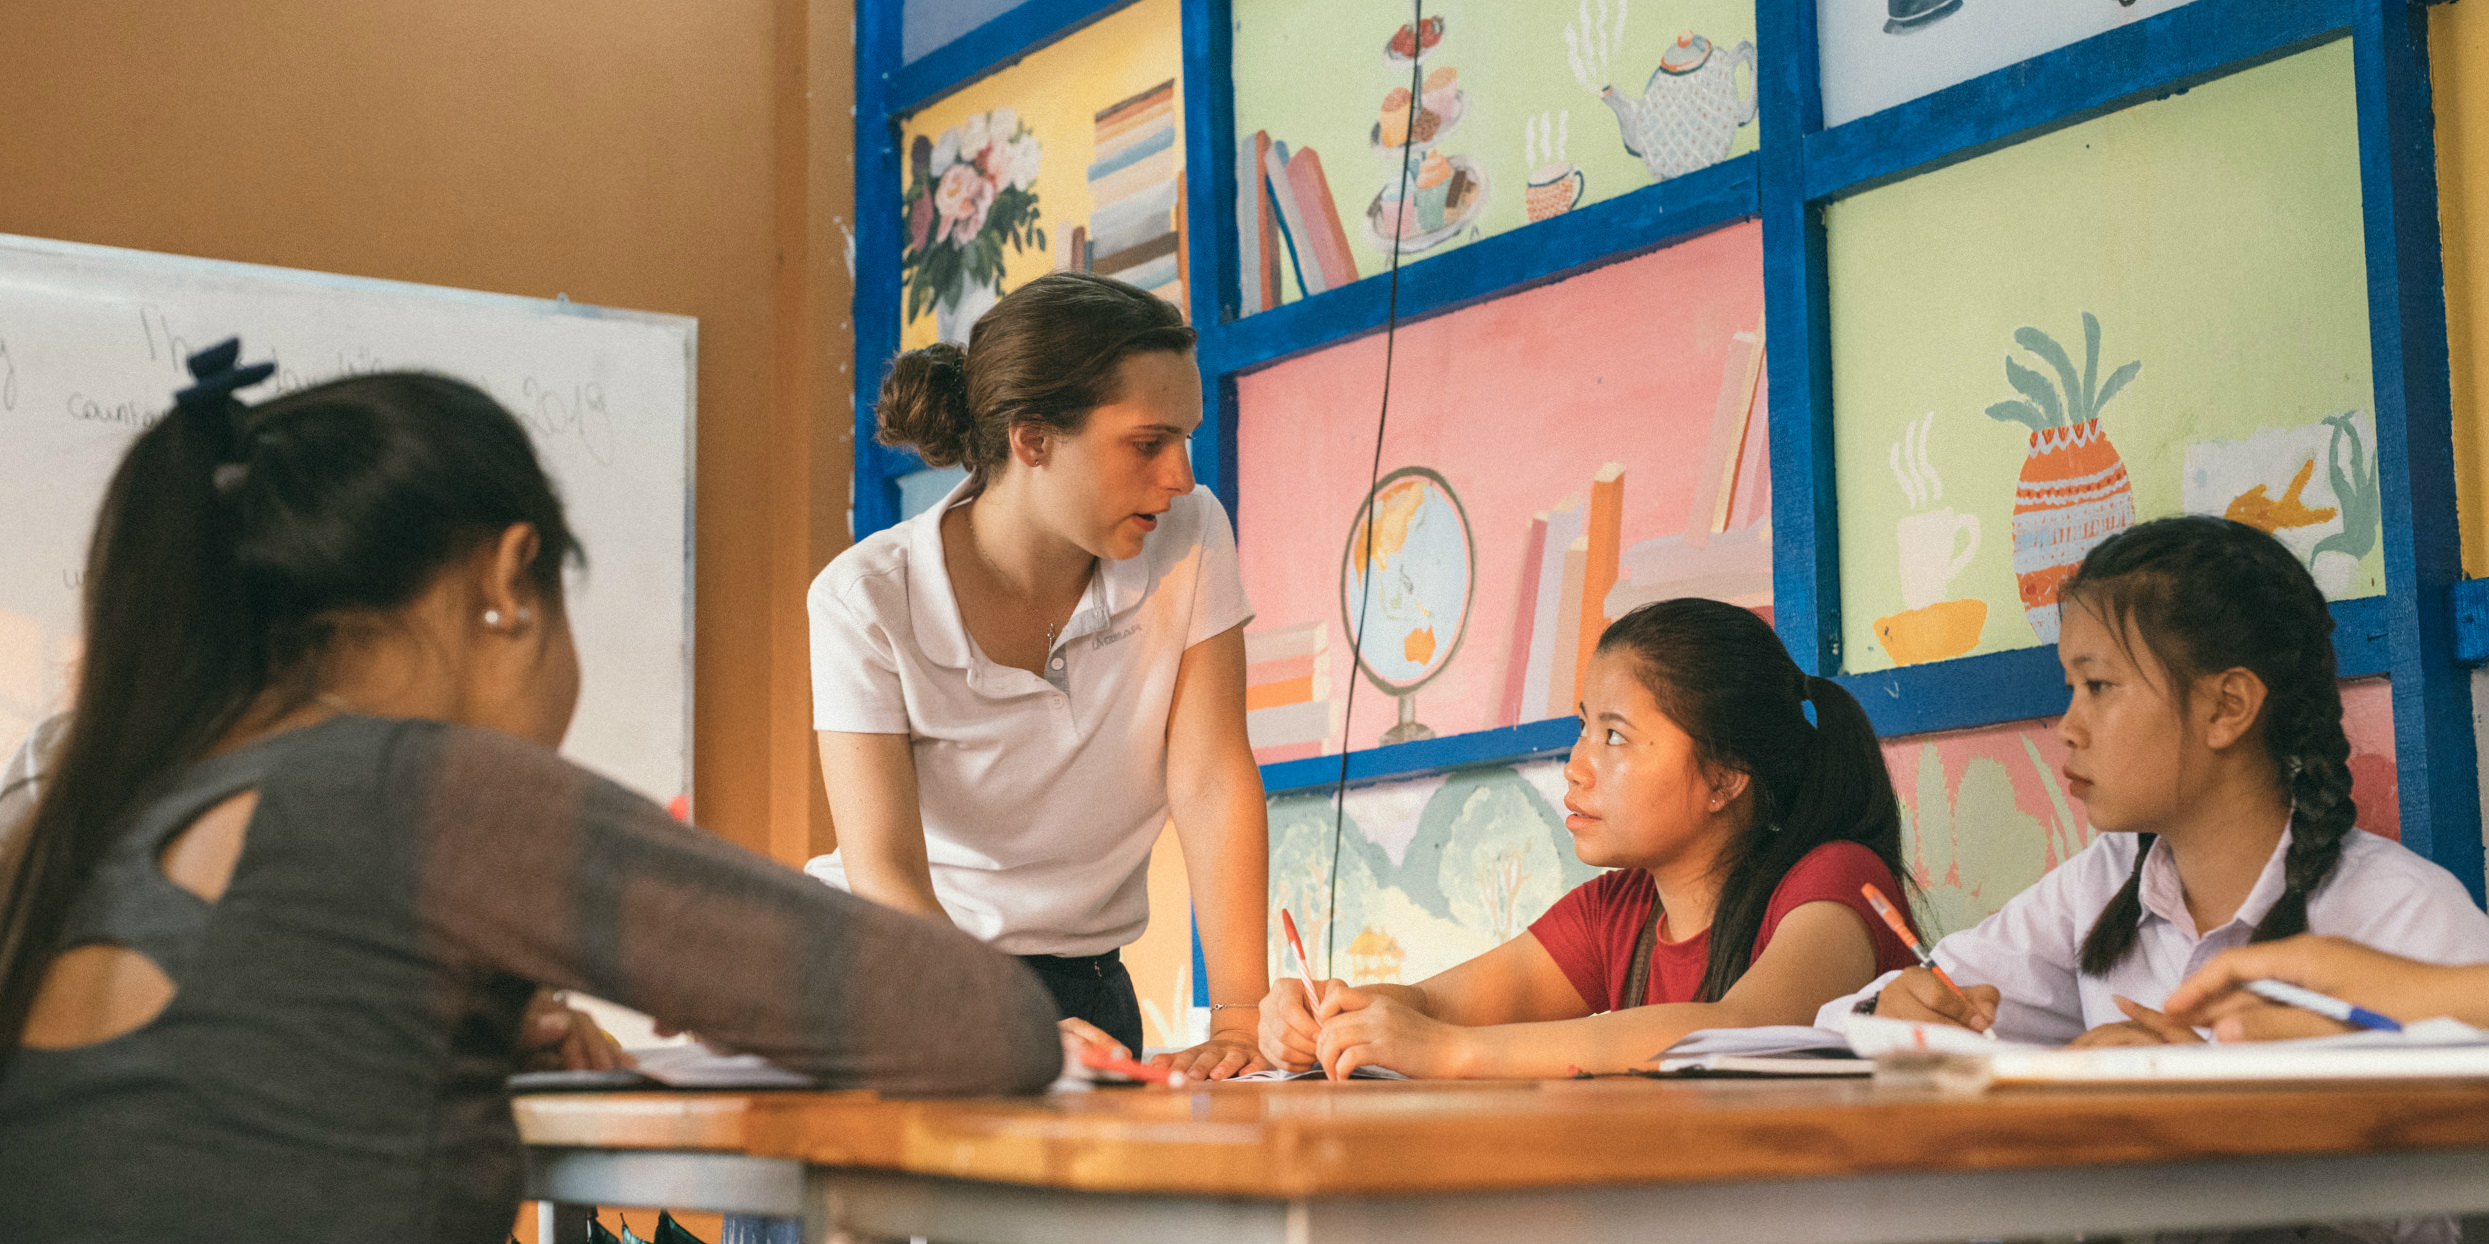 A GVI participant engages with women learners while on a volunteer teaching program.